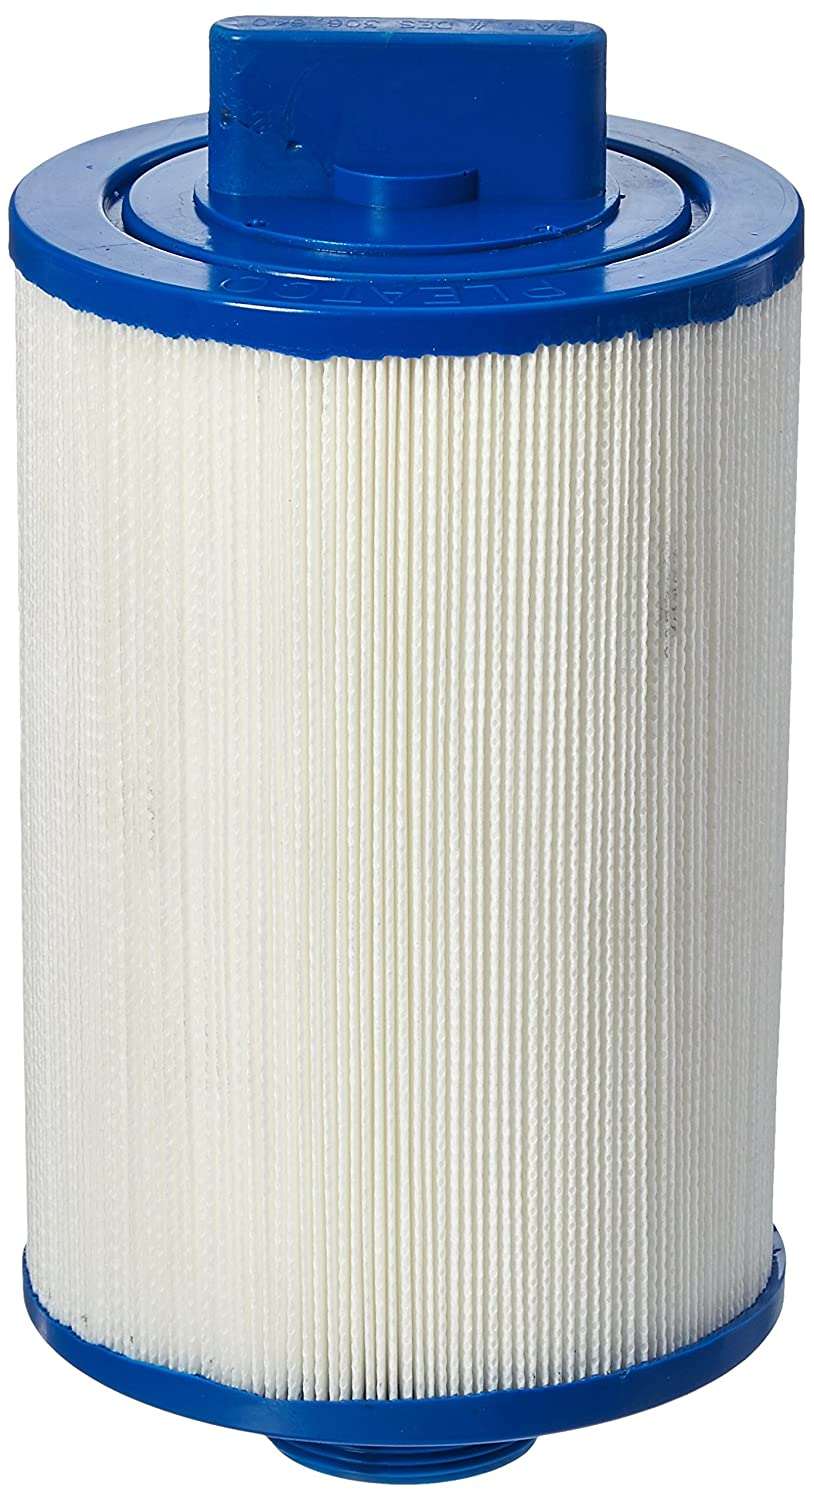 1 Cartridge Antigua PLEATCO PSANT20P4 Replacement Cartridge for Futura Spa Strong Industries